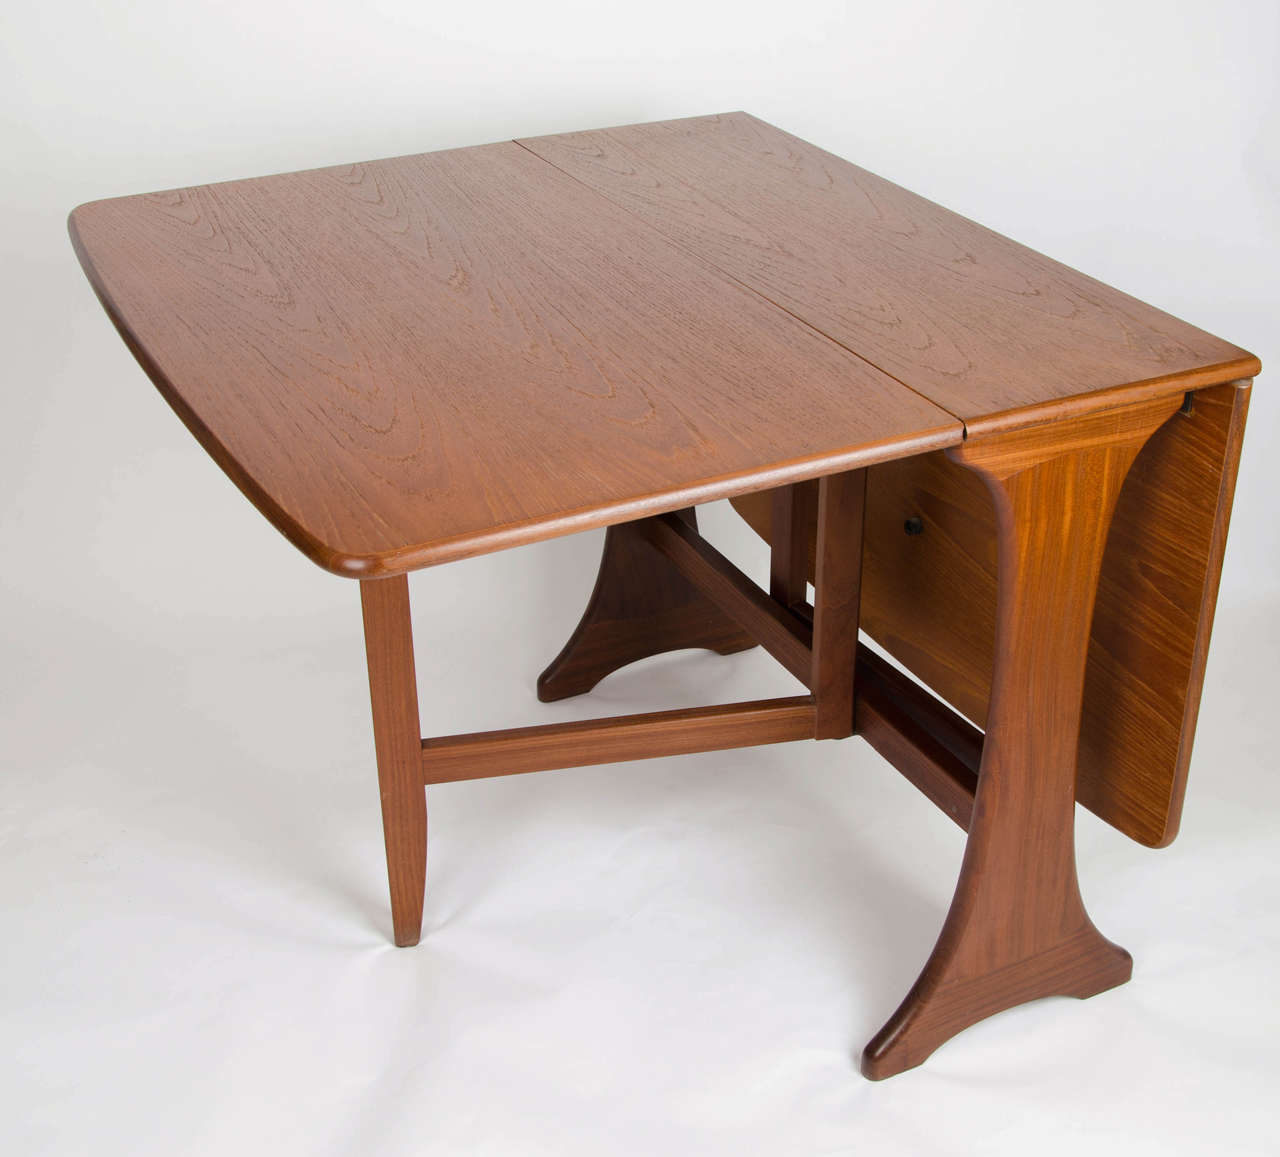 plan dining table drop leaf solid teak makers label circa